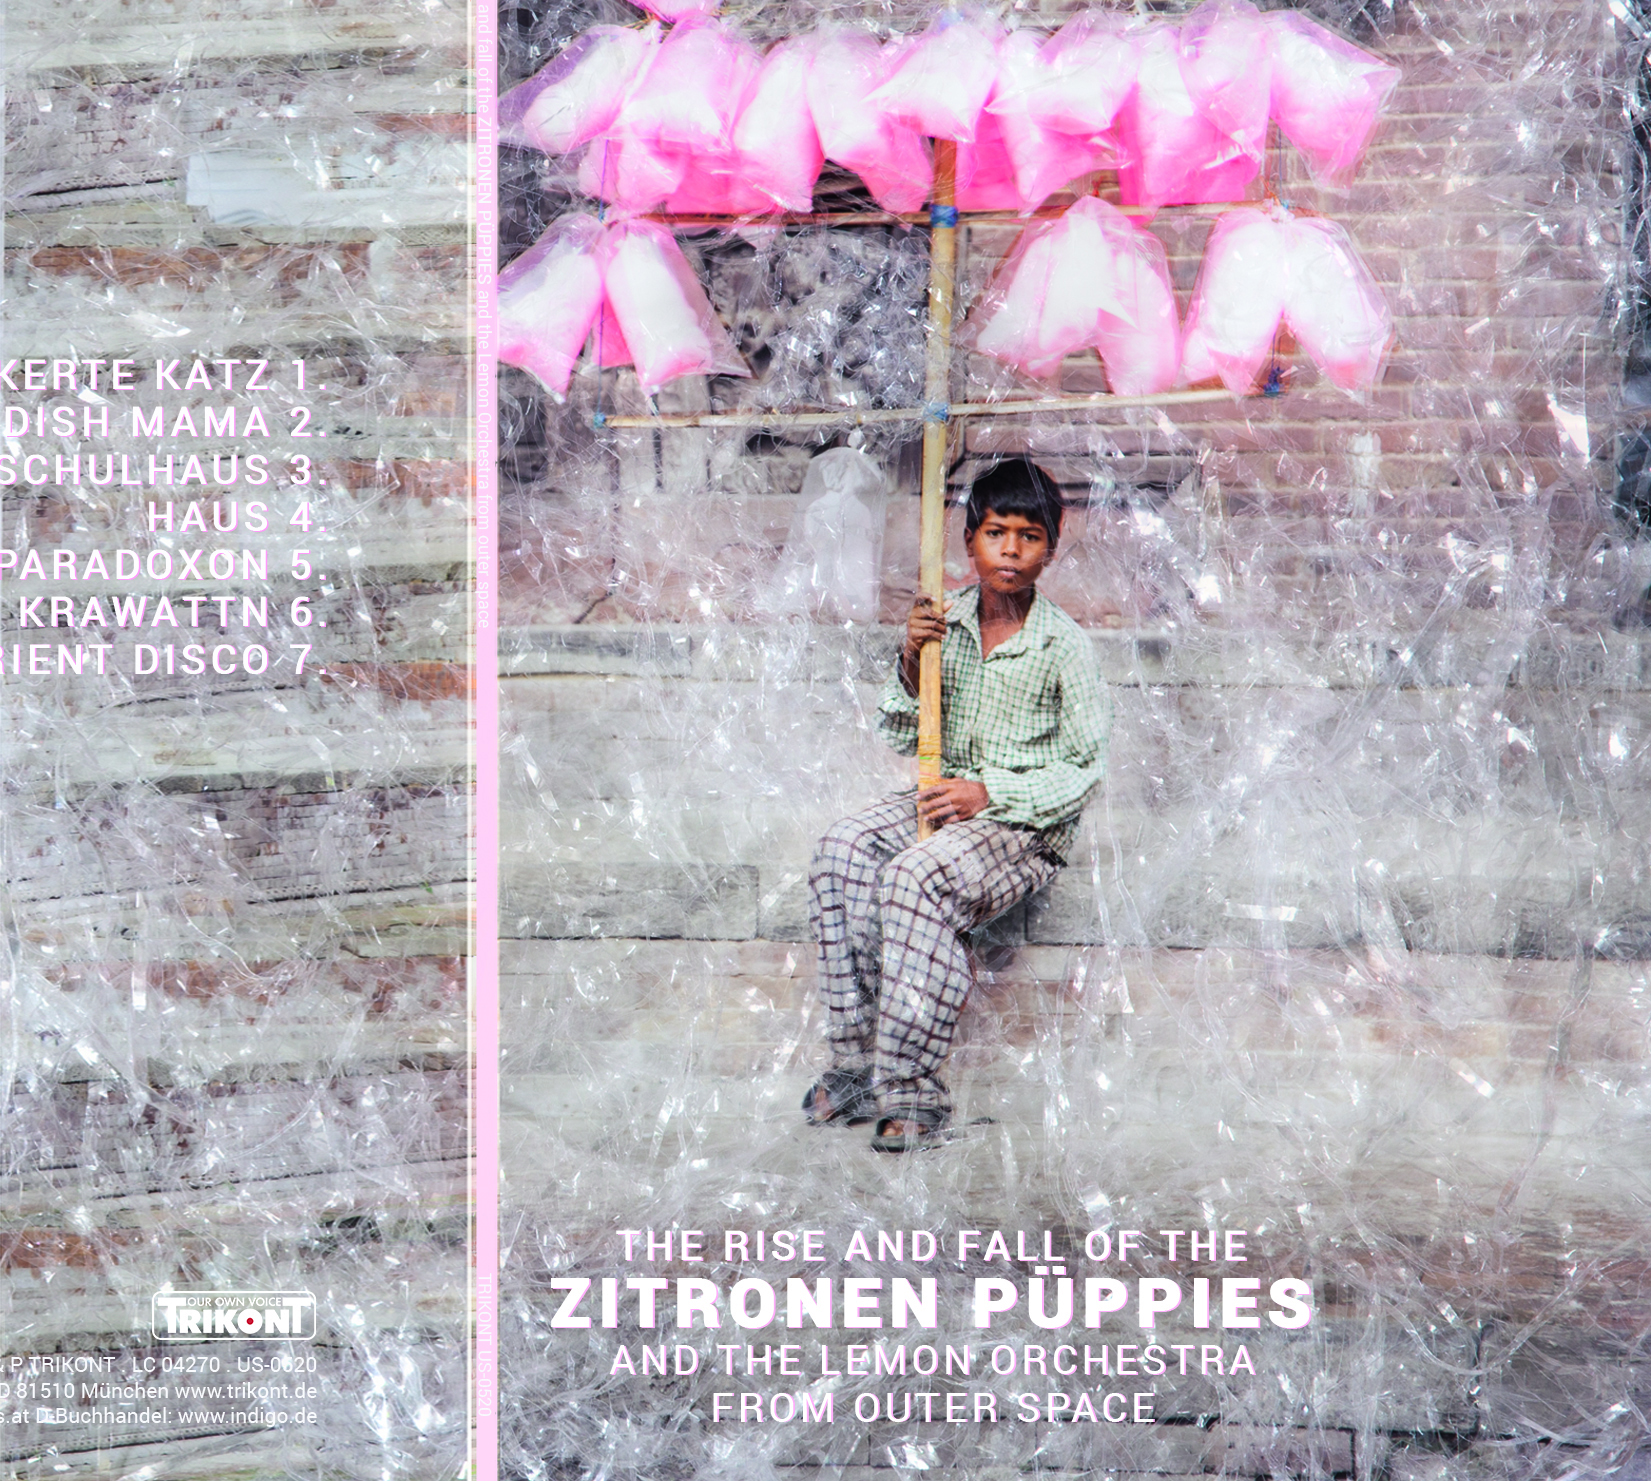 Zitronen Püppies - The Rise And Fall Of The Zitronen Püppies And The Lemon Orchestra From Outer Space